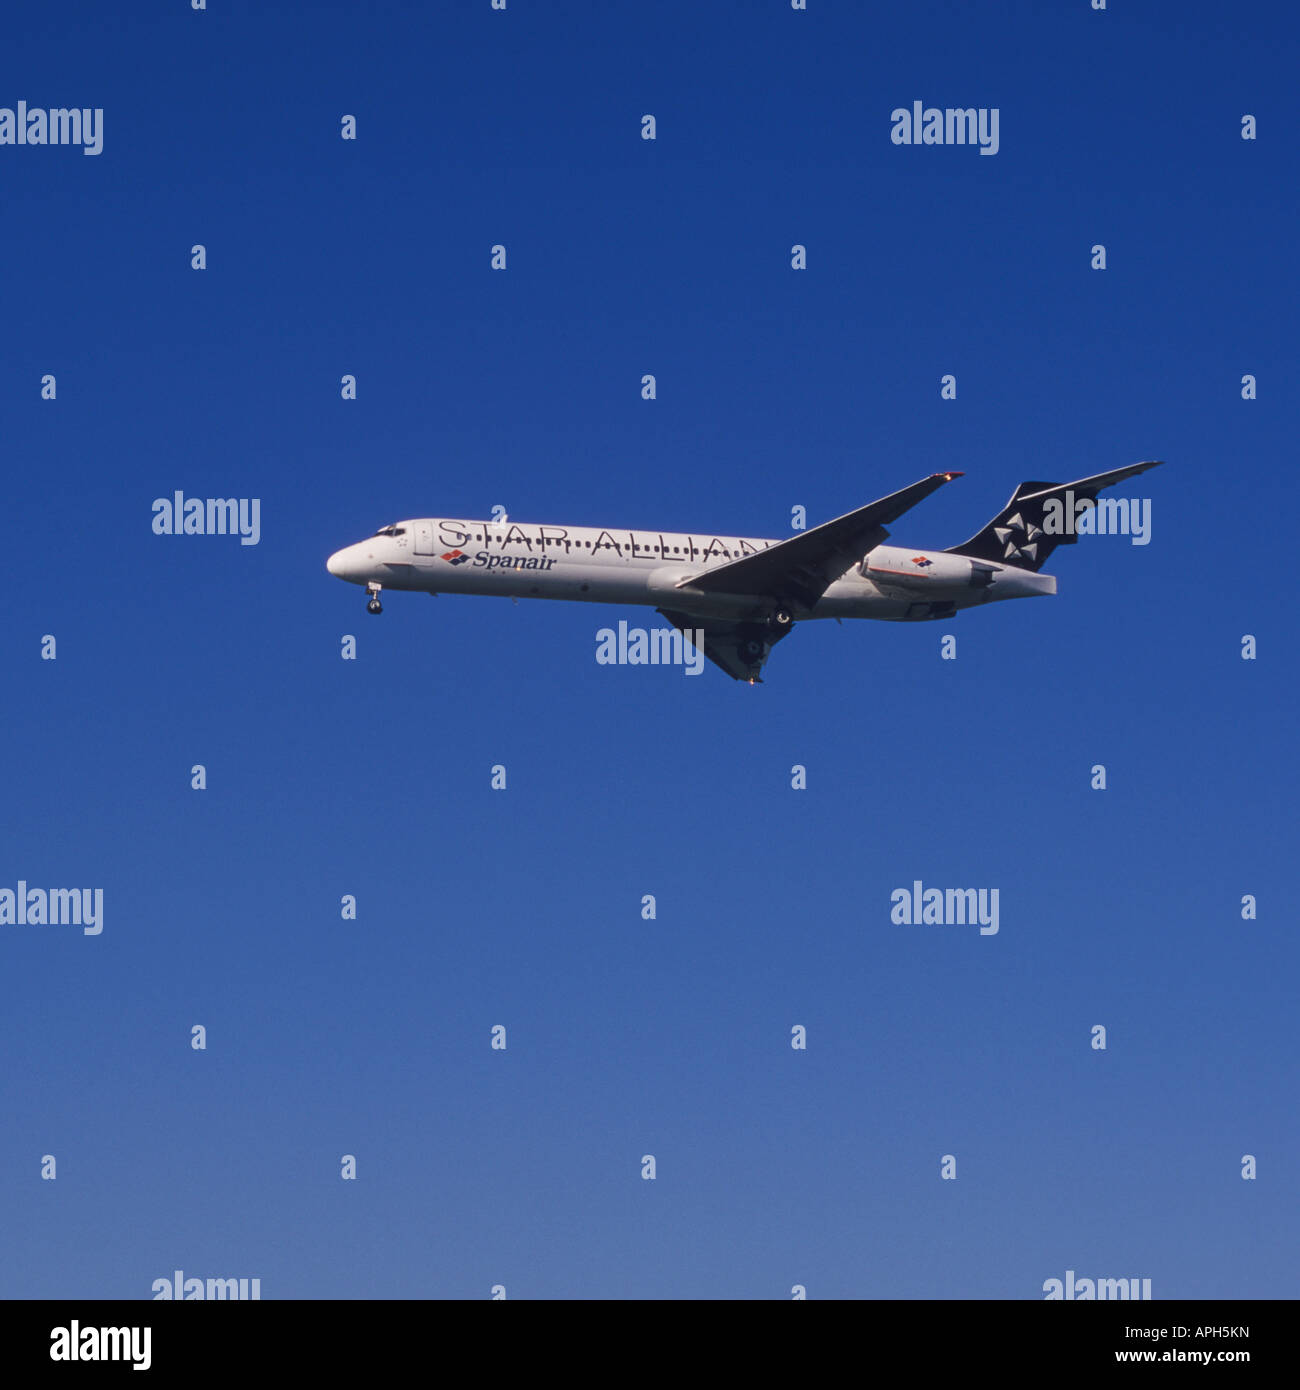 Spanair Aircraft in STAR ALLIANCE livery on final approach to the Airport of Palma de Mallorca Balearic Islands - Stock Image